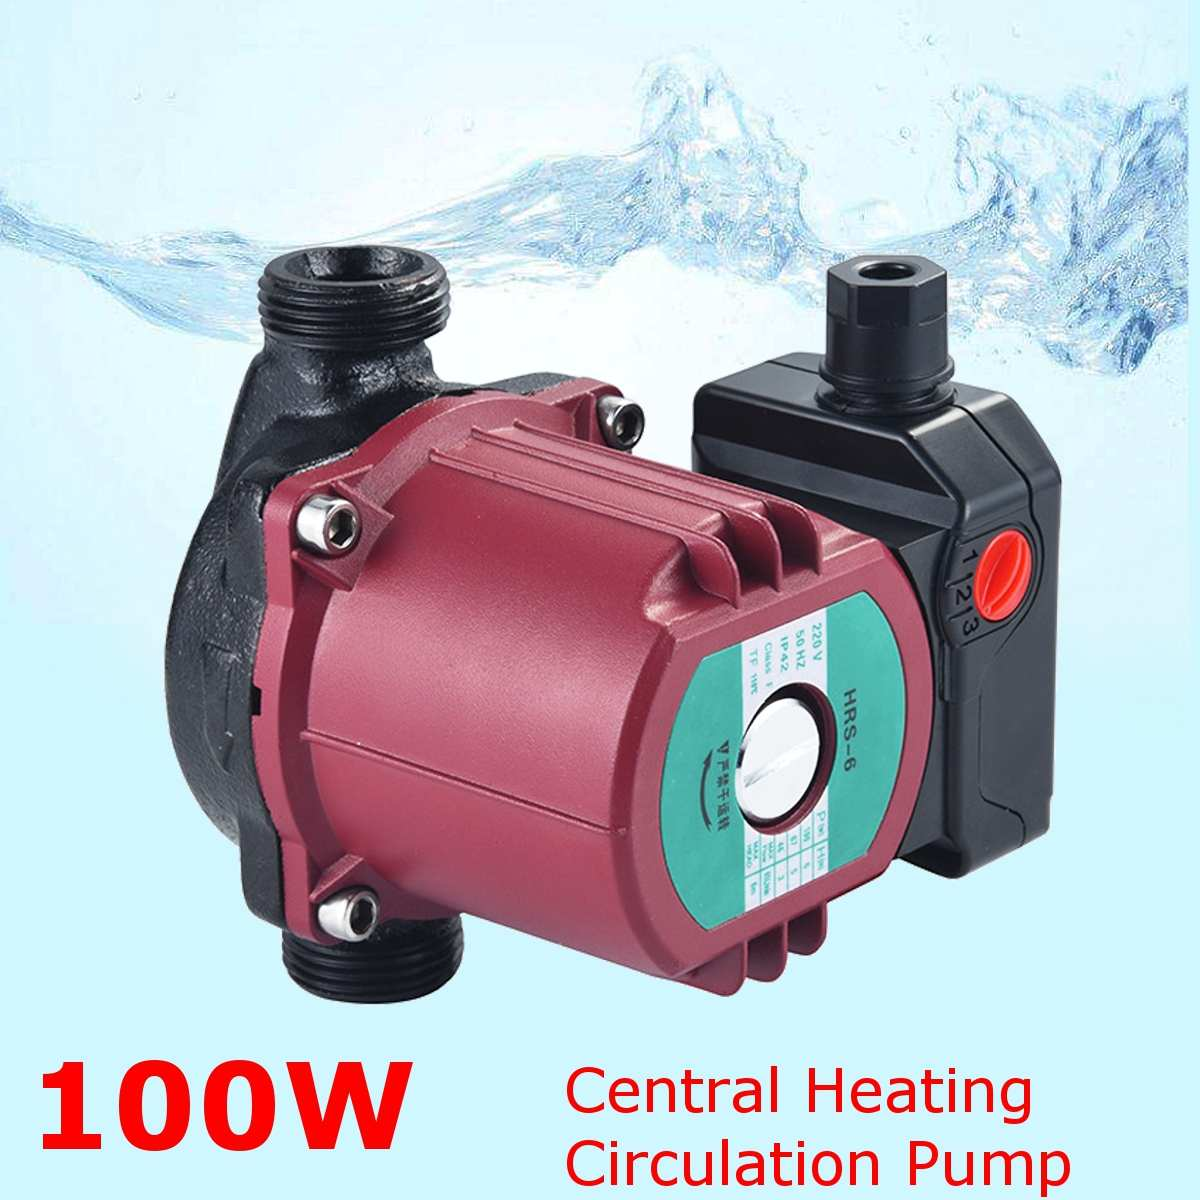 3 Speed 220V Central Heating Circulator Mute Boiler Hot Water Circulating Pump Cold And Hot Water General